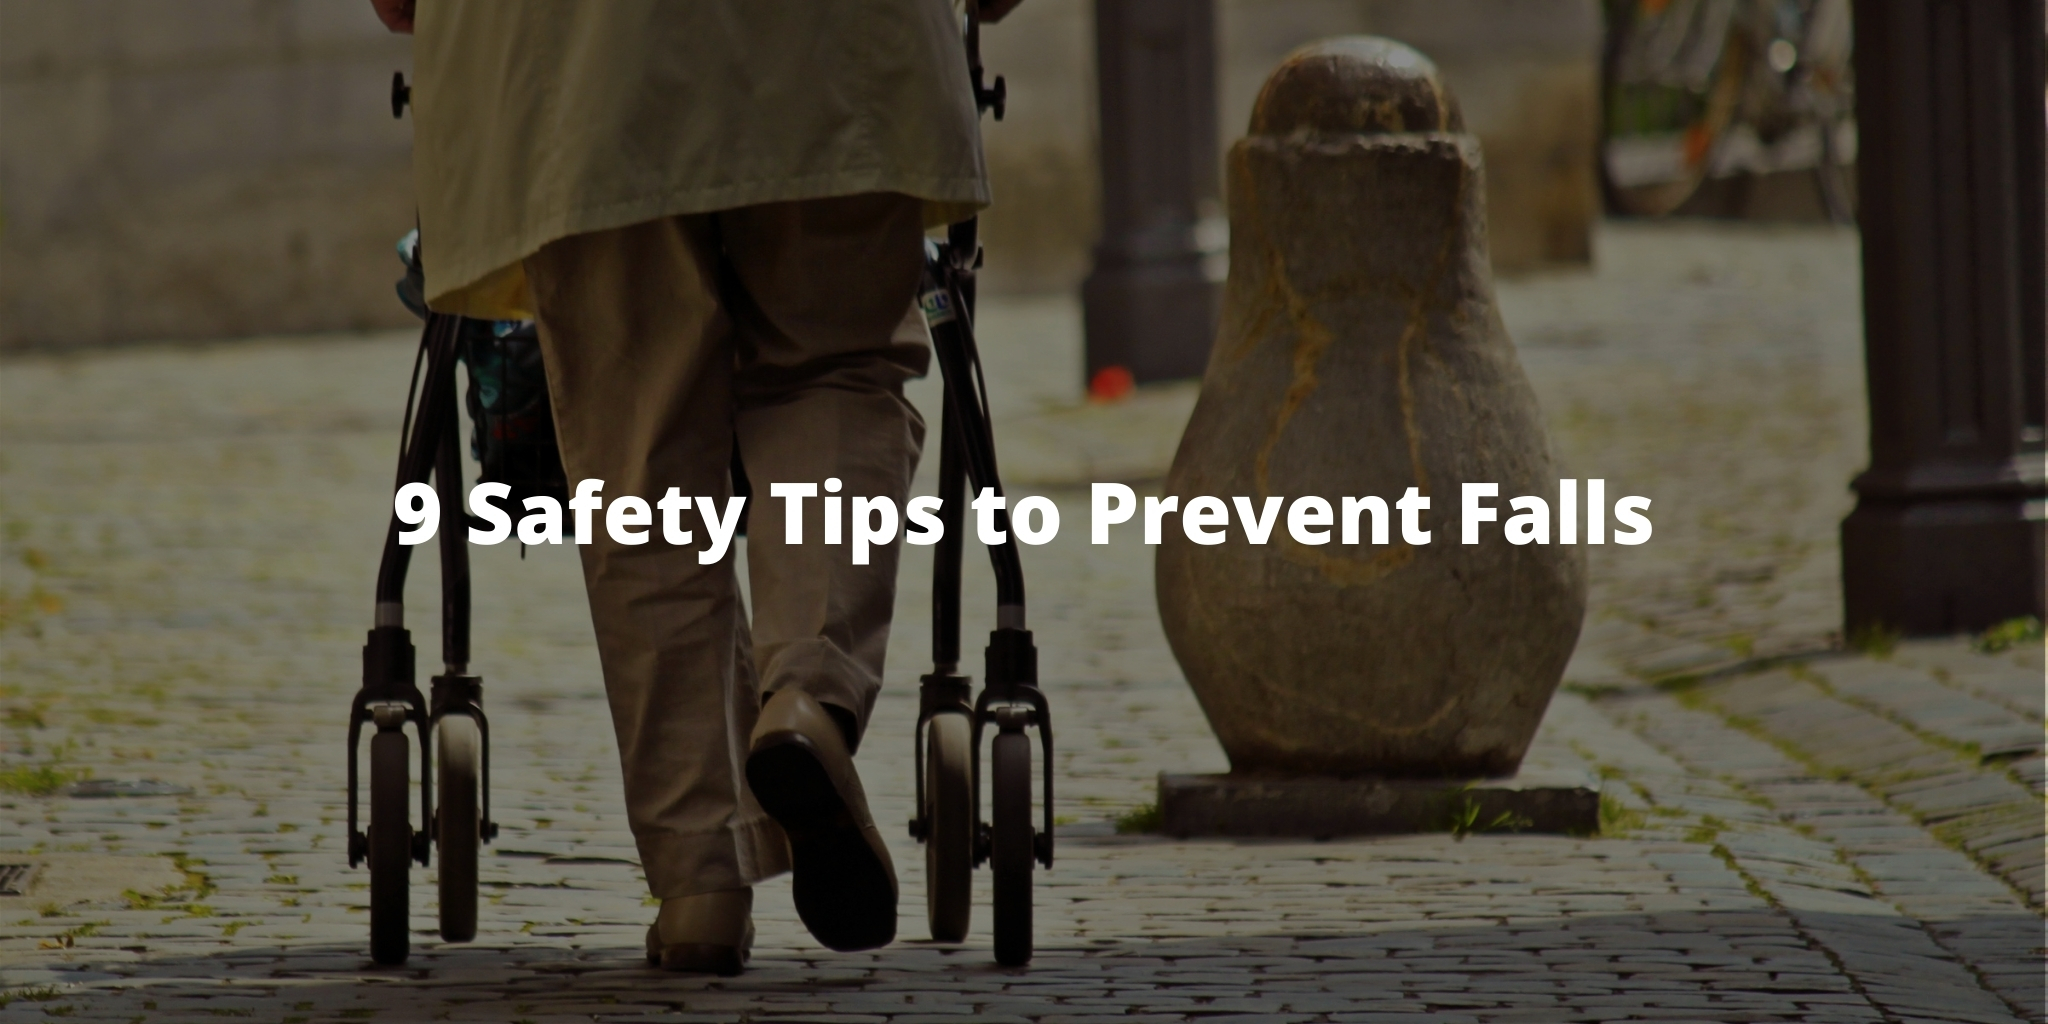 9 Safety Tips to Prevent Falls